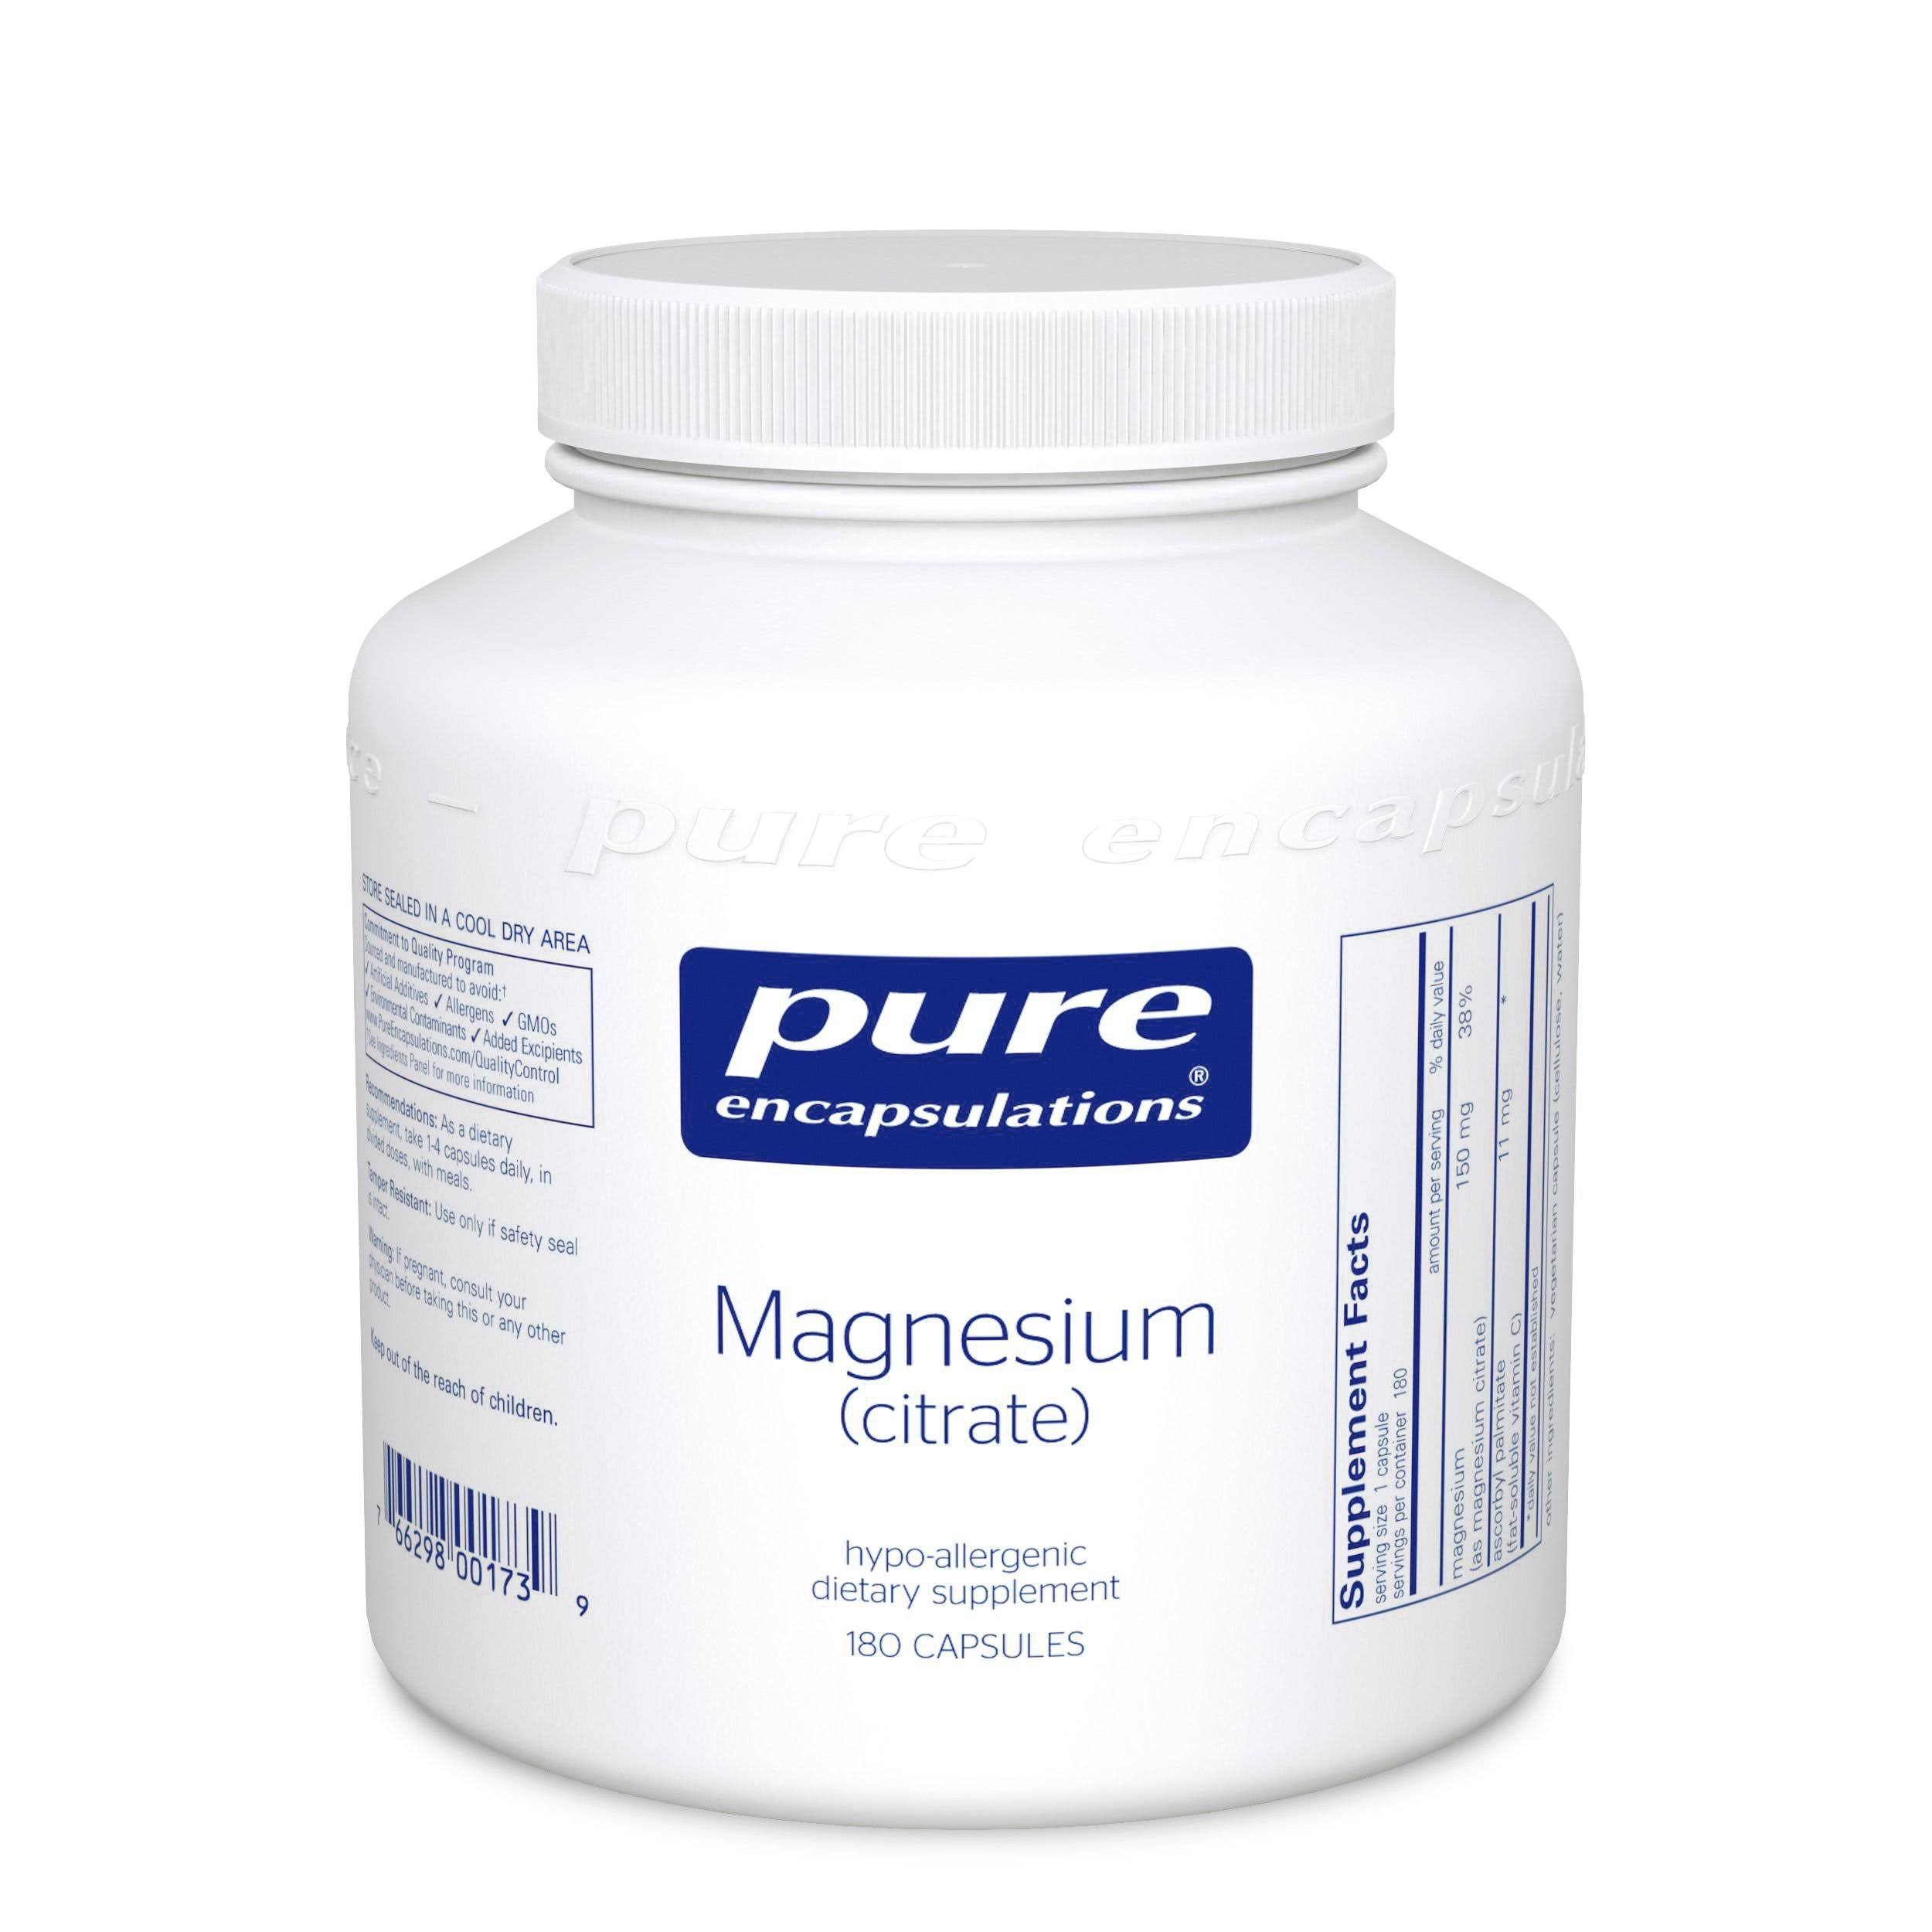 Pure Encapsulations Magnesium Citrate Dietary Supplement - 180 capsules